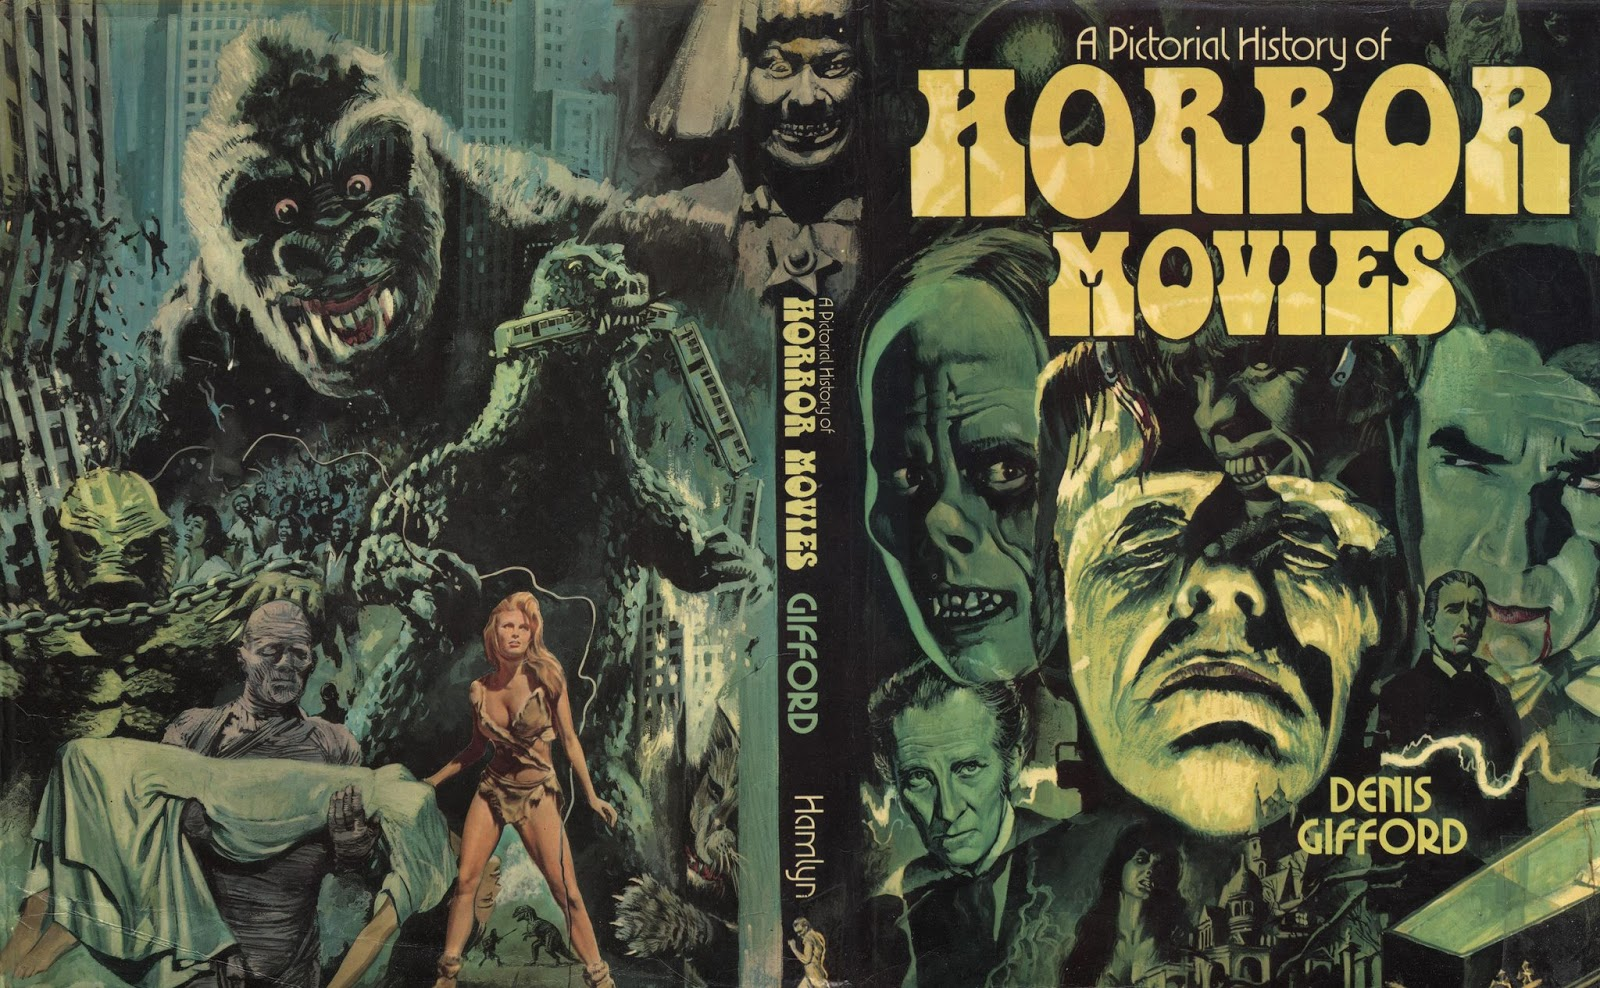 a history of horror movies History of horror - performed by the city of prague philharmonic orchestra licensed to youtube by koch entertainment, the orchard music (on behalf of silva screen records) pedl, warner.